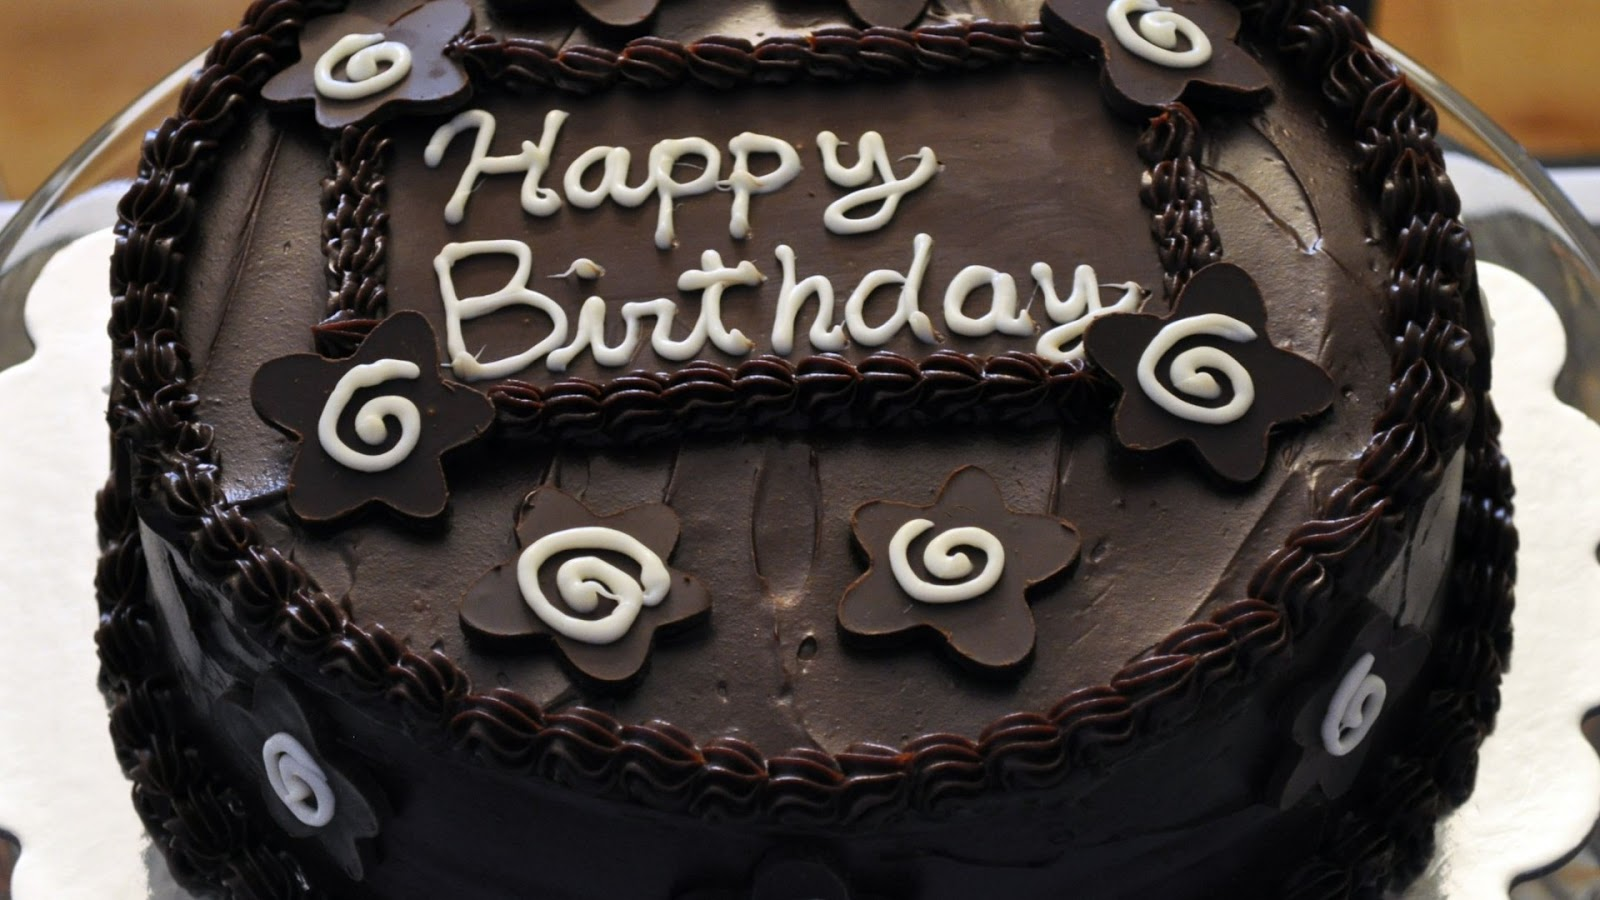 Happy Birthday Cake Images HD for Mobile